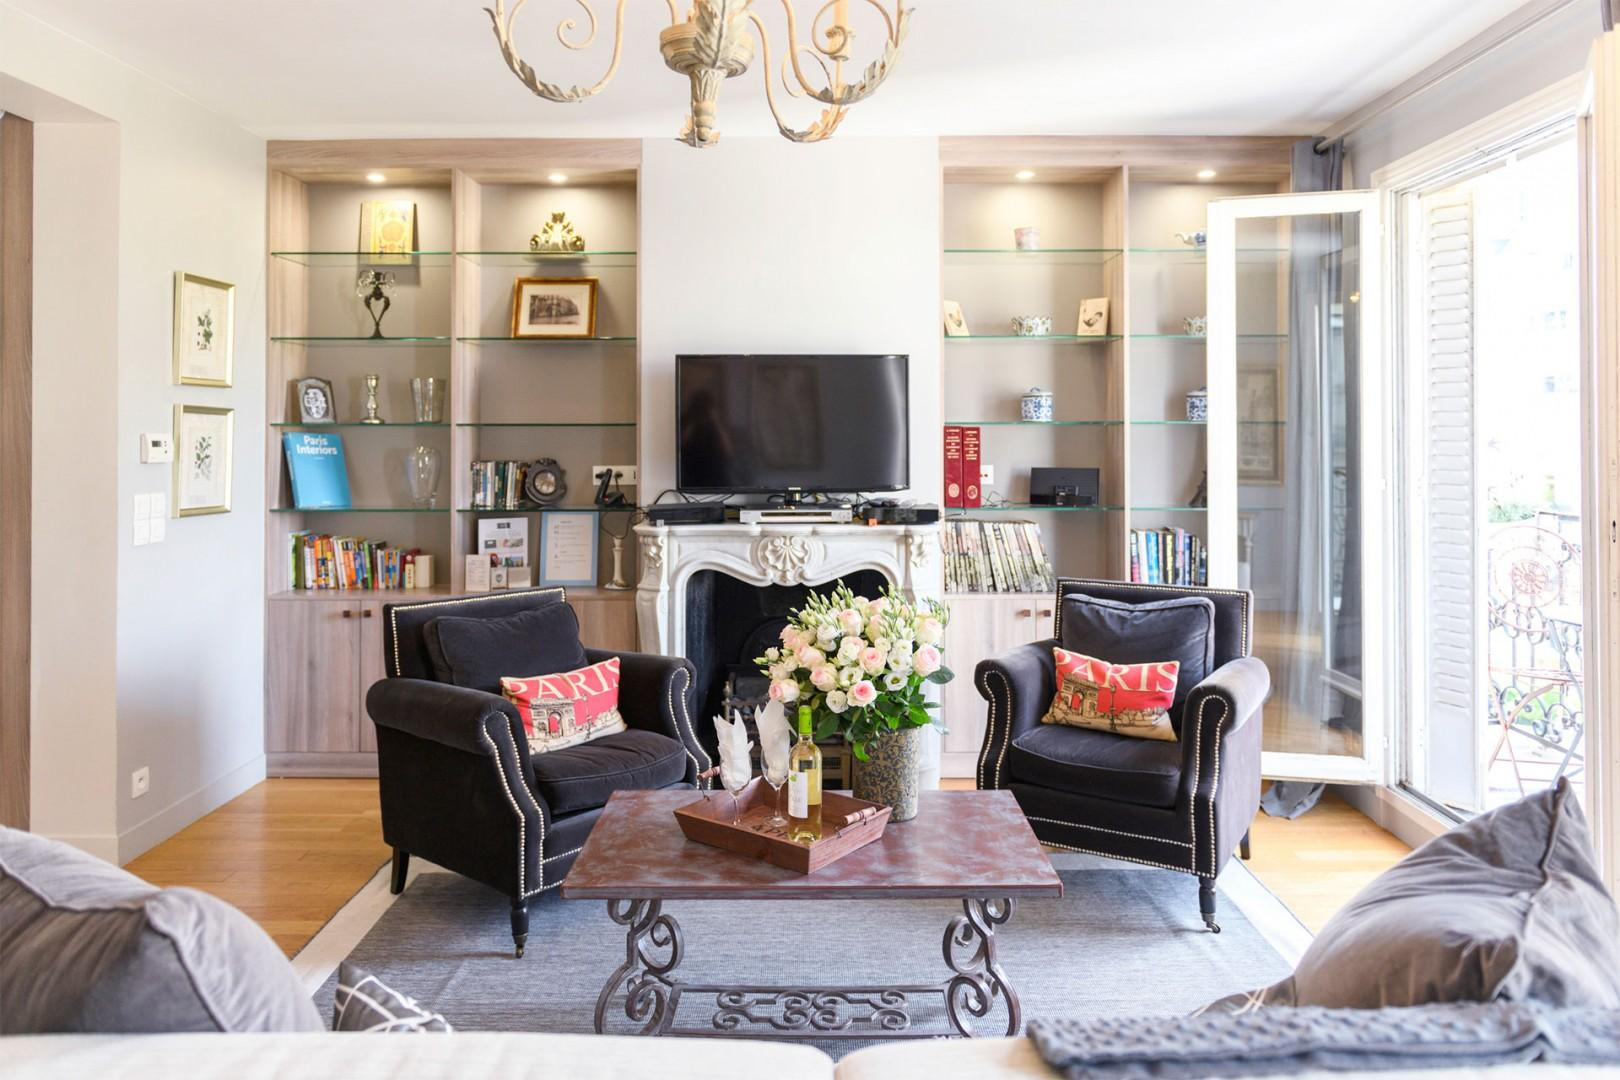 Relax by the charming Parisian fireplace.